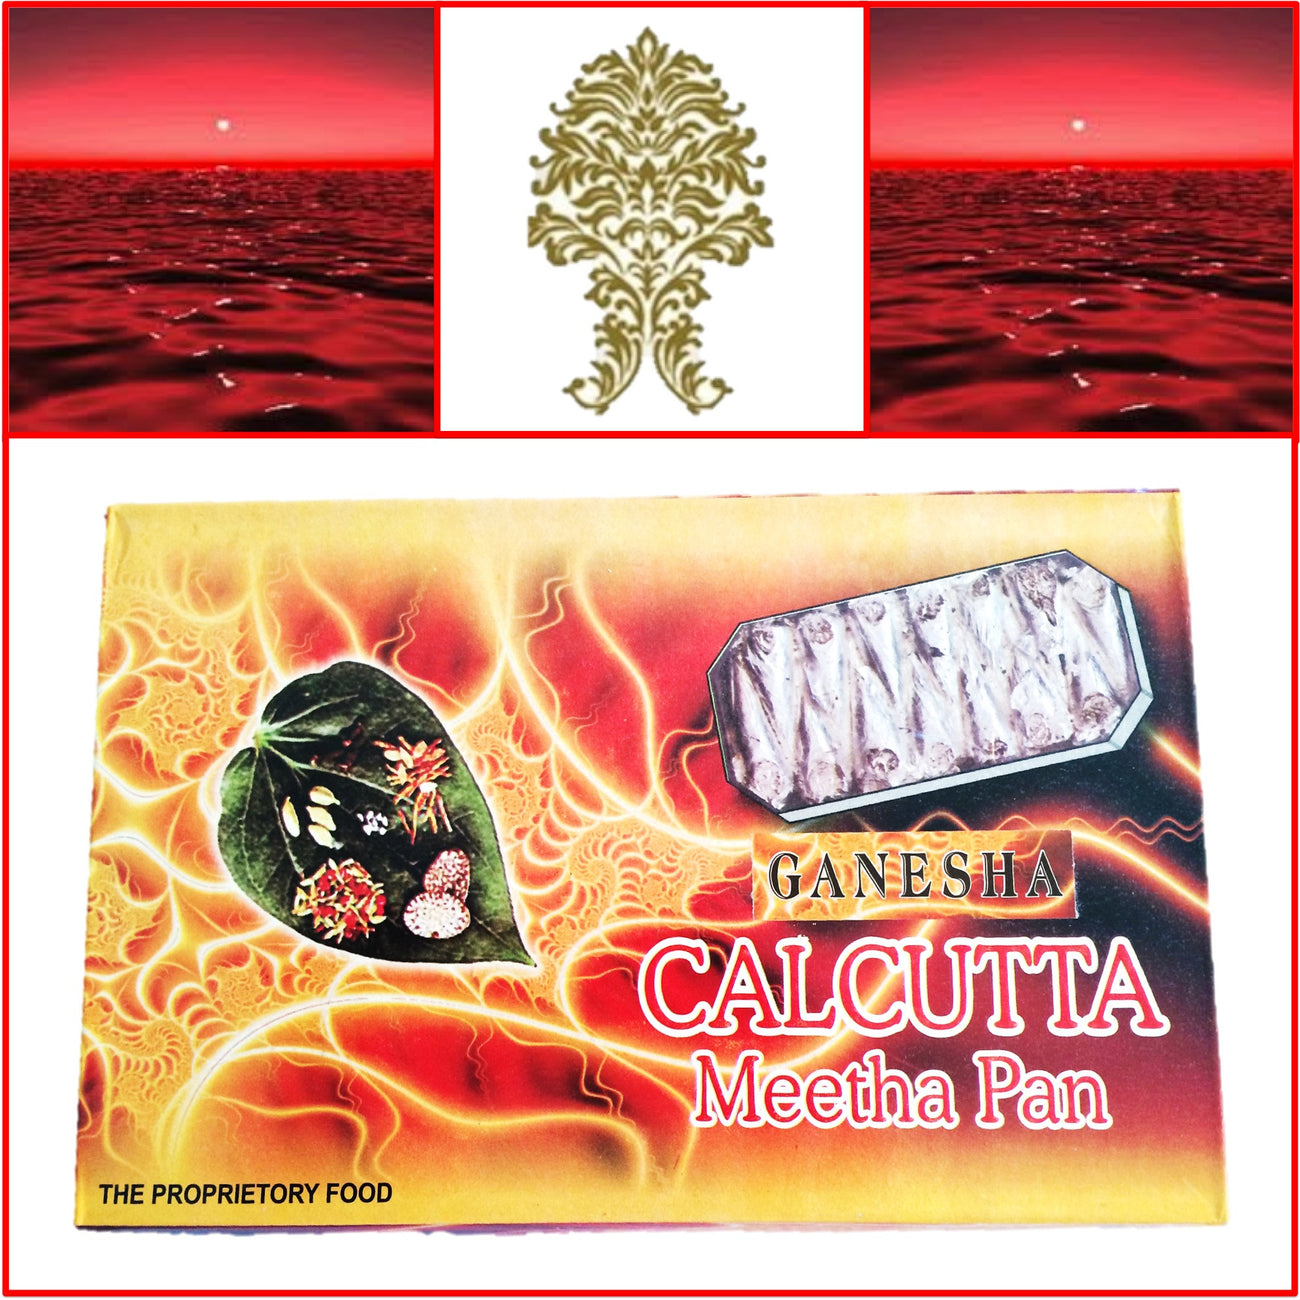 ONE Box Calcutta Mitha Pan (Paan) 14 Pieces Each